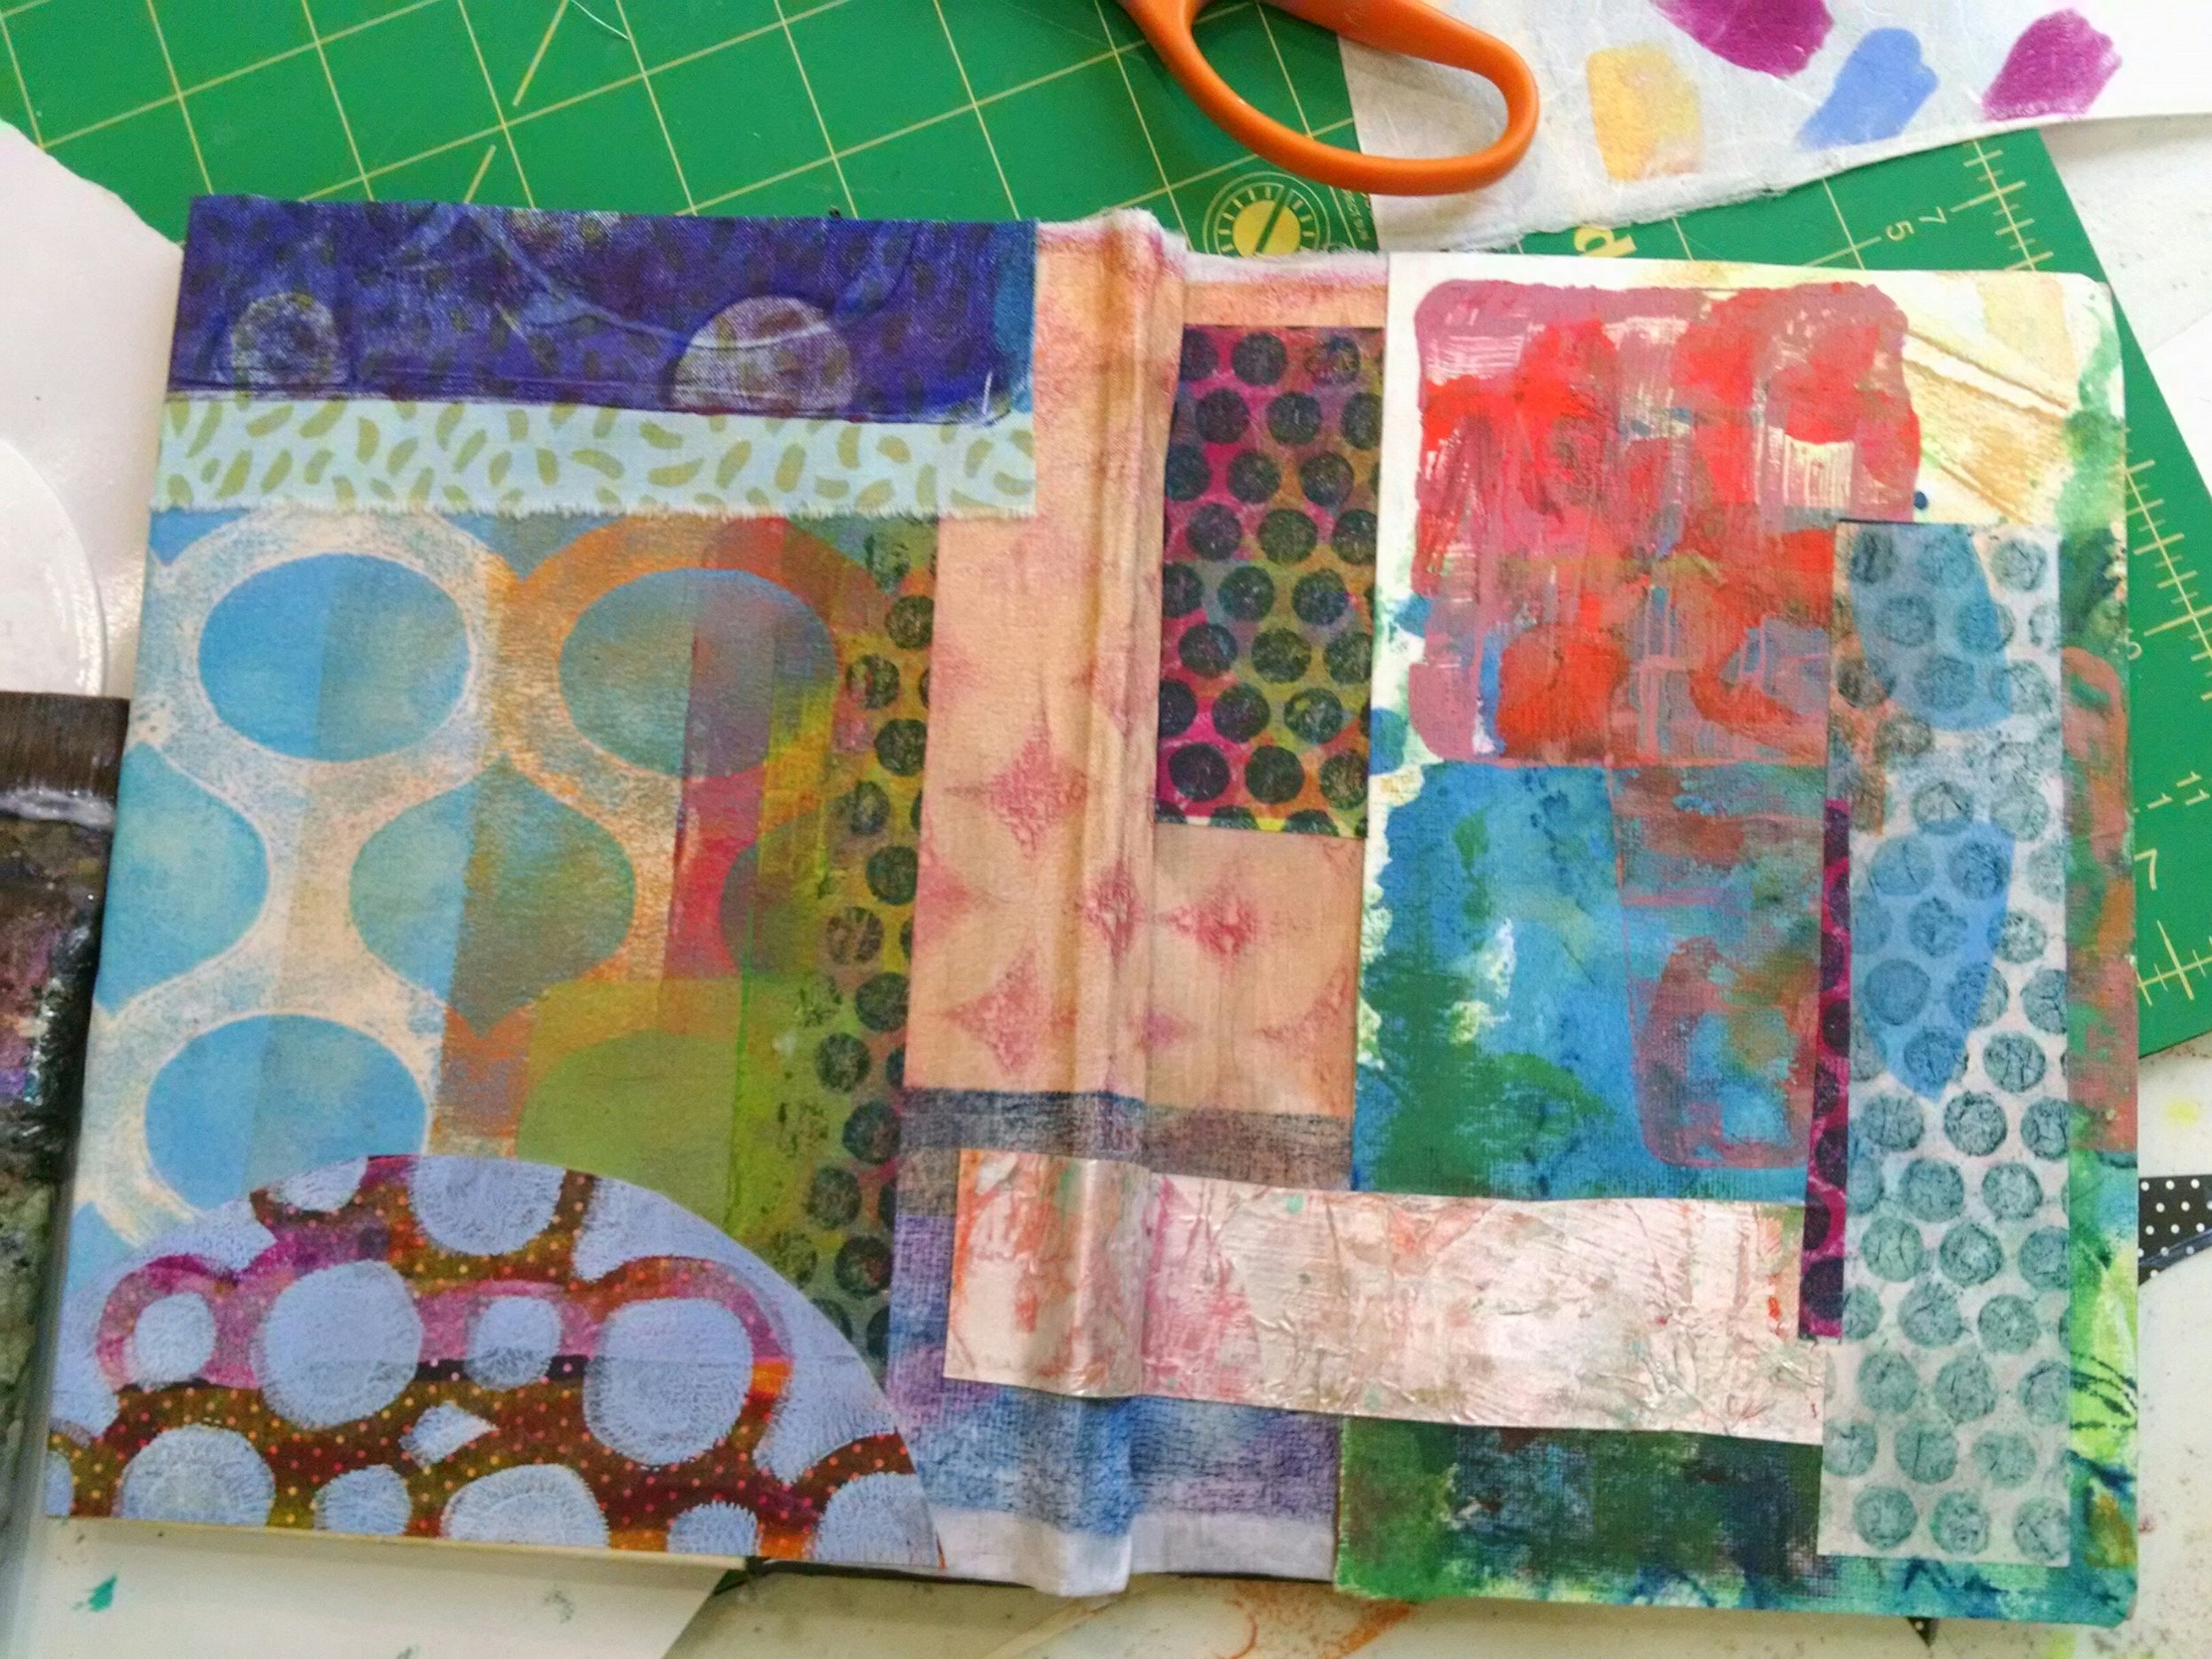 ©Christine Sauer, collaged front and back journal cover using monoprinted paper and fabric.